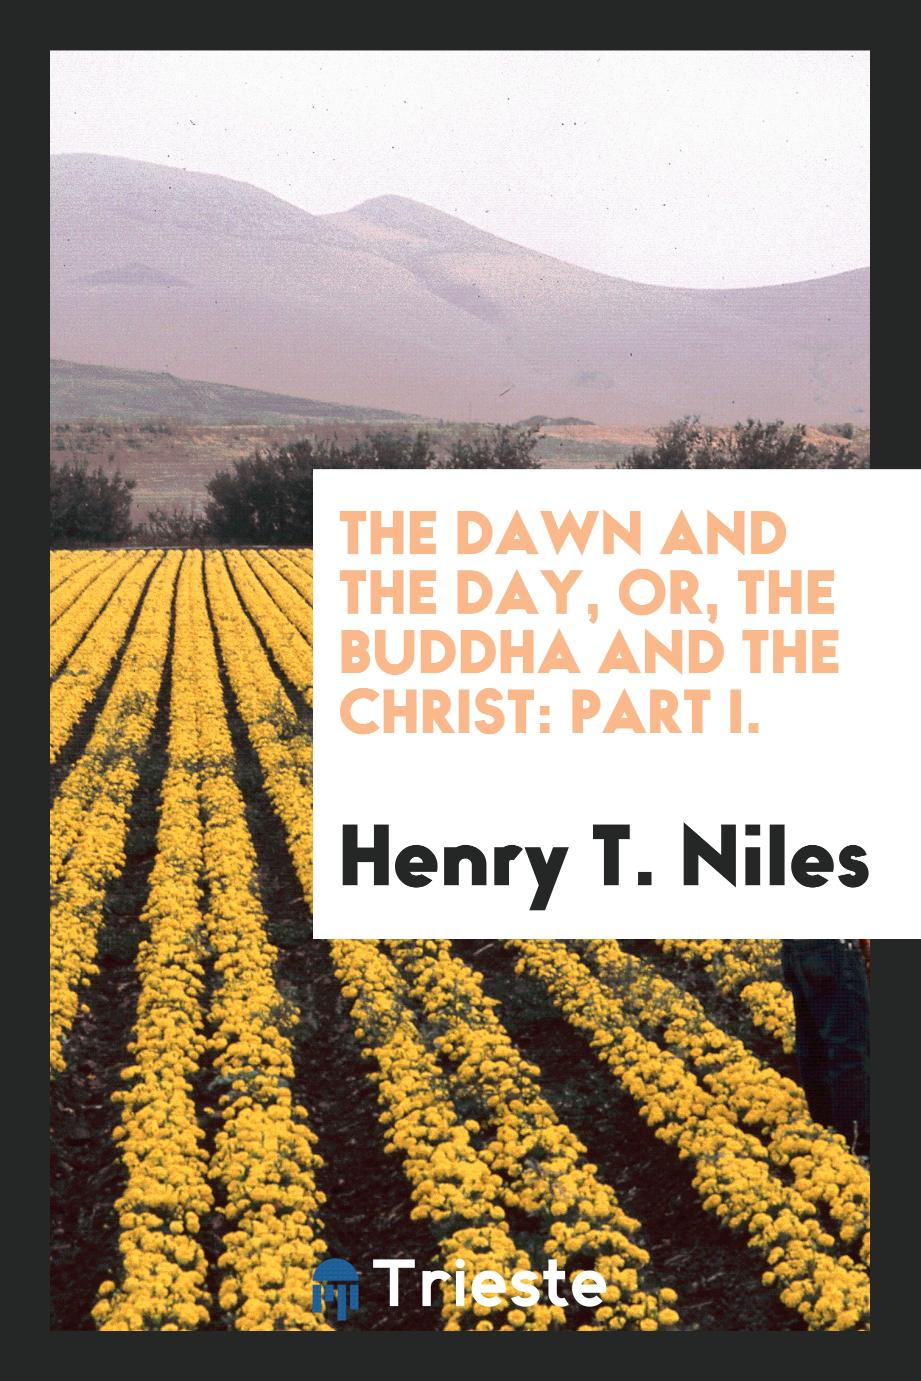 The Dawn and the Day, or, the Buddha and the Christ: Part I.